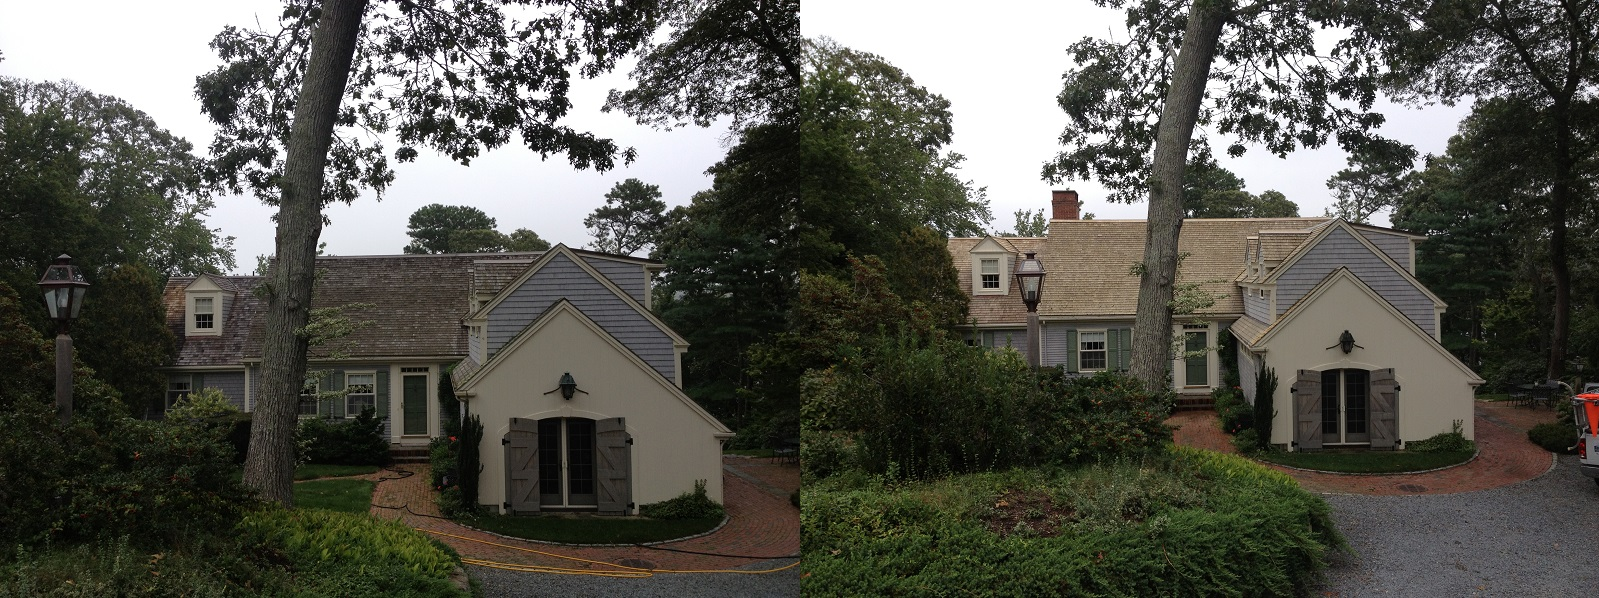 Roof Cleaning In Cape Cod Ma Softwash Roof Cleaner